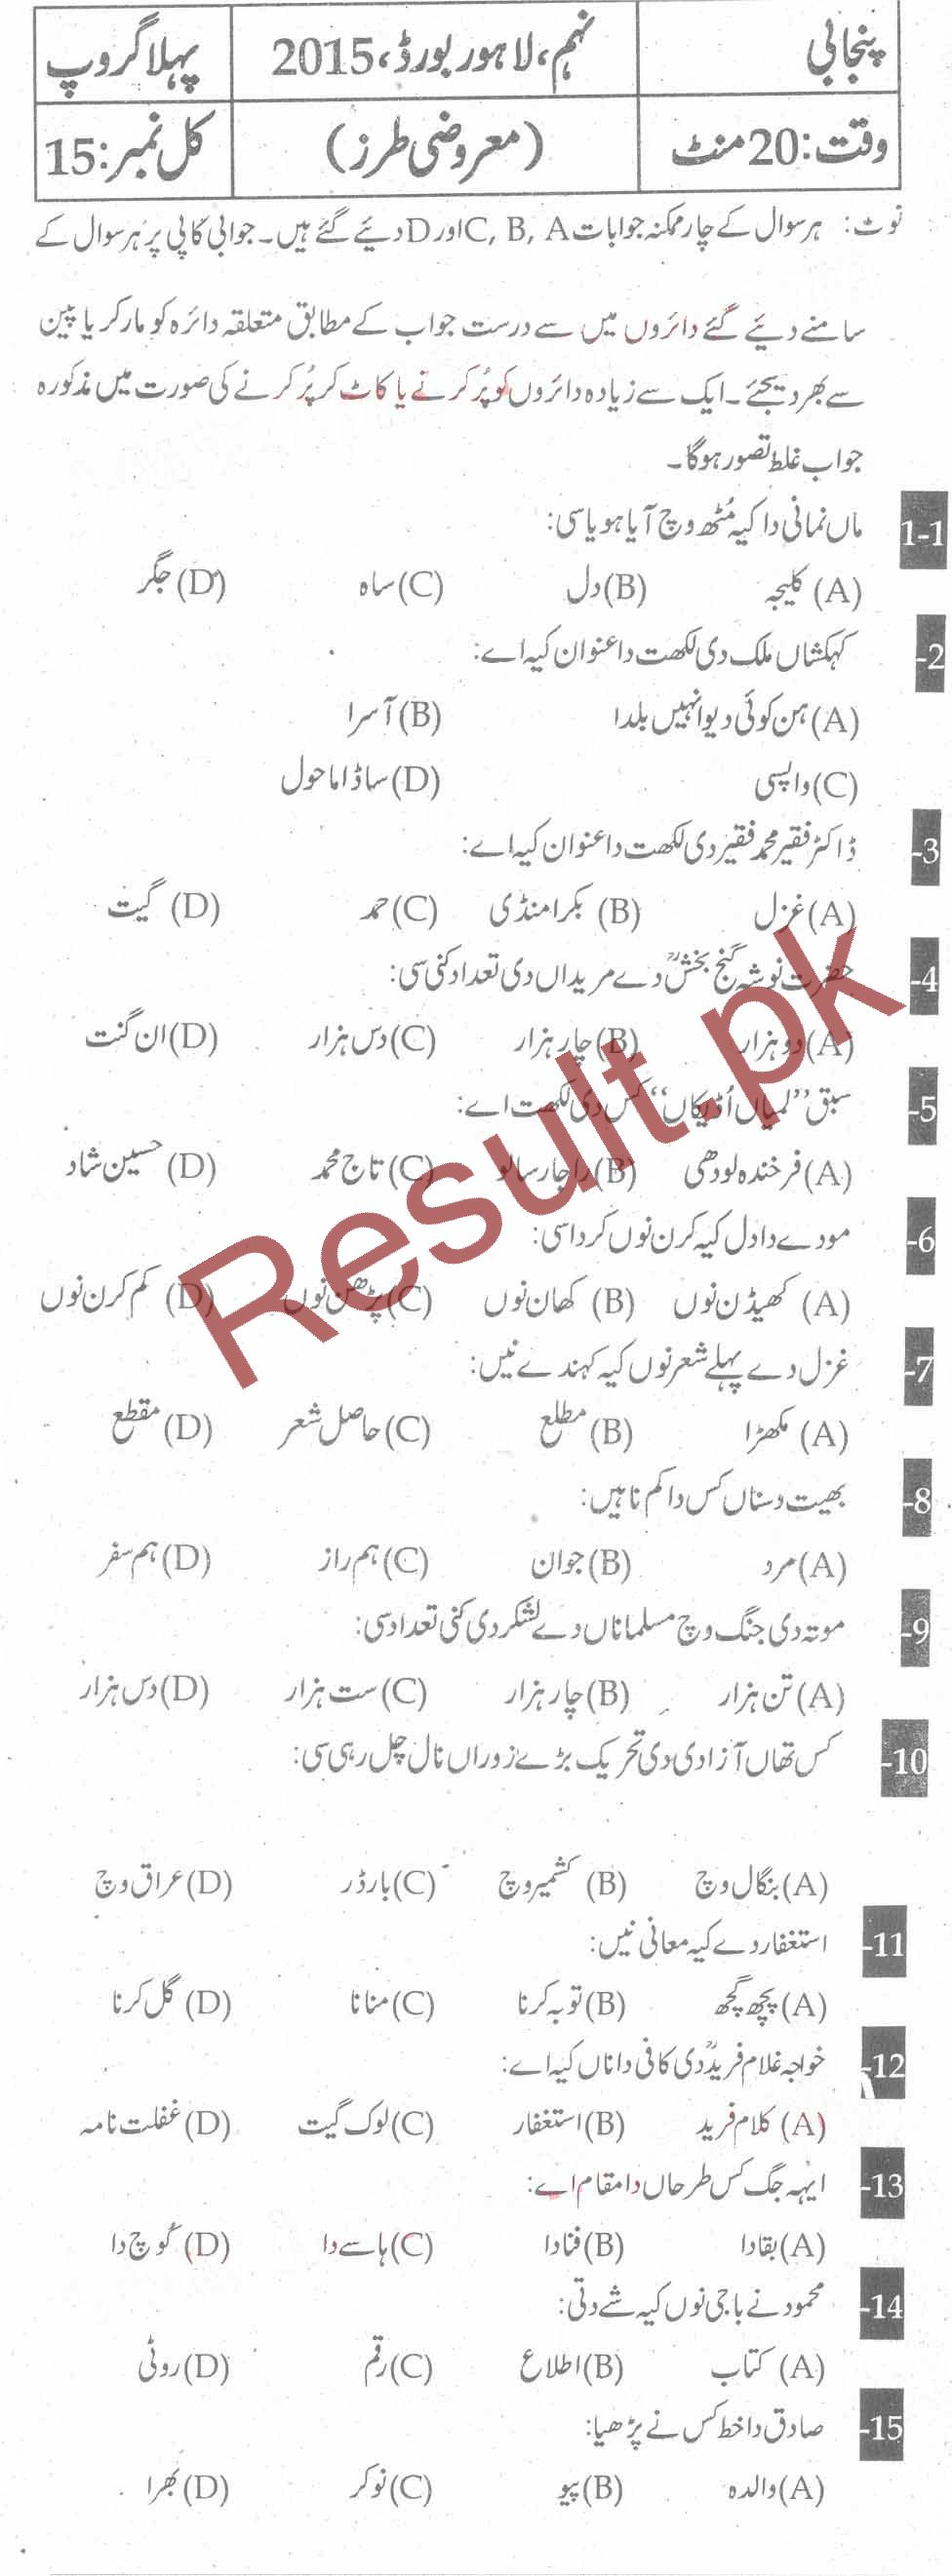 bise lahore past papers intermediate part 1 Part 2 results 2015 fsc part 1, part 2 ics part 1, part 2 icom part 1, part 2, date sheet 2015, past papers 2015, admissions 2015, model papers2015, roll no slips 2015 bise lahore board intermediate result (part ii on september) bise lahore board ssc result (part i on august 2015.